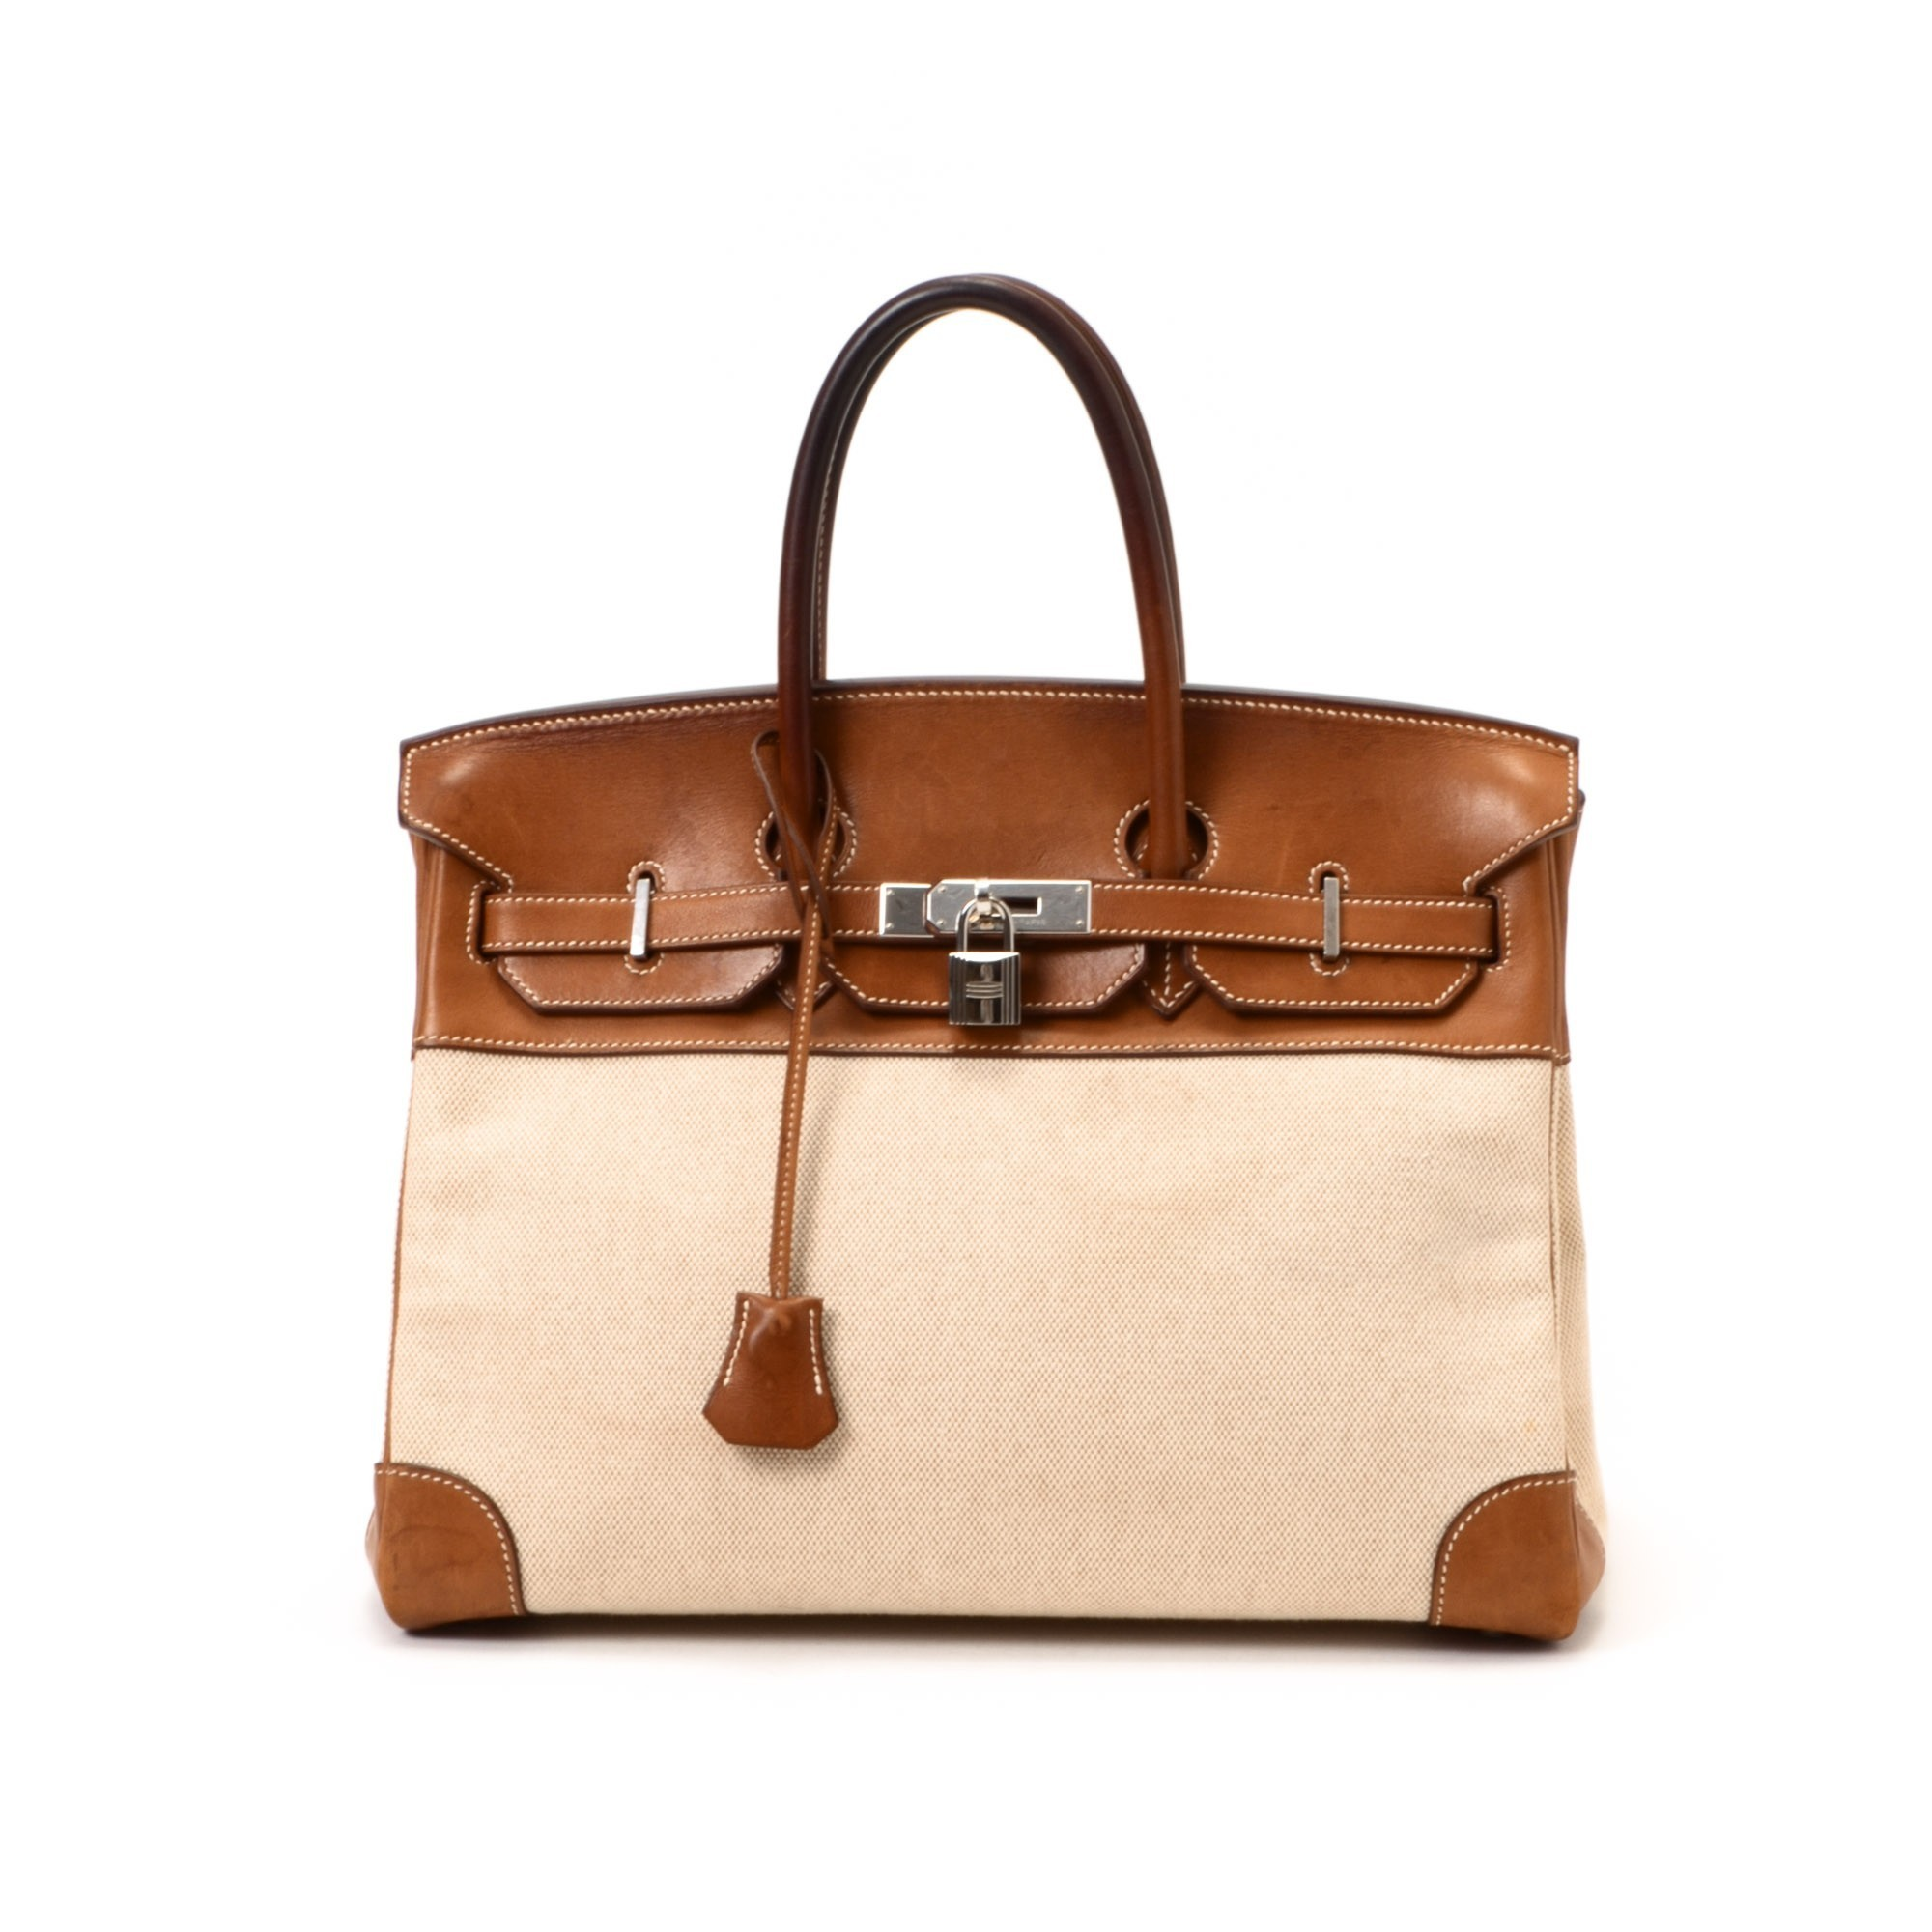 Herm¨¨s Birkin 35 Toile Veau barenia Beige, Fauve Canvas and ...